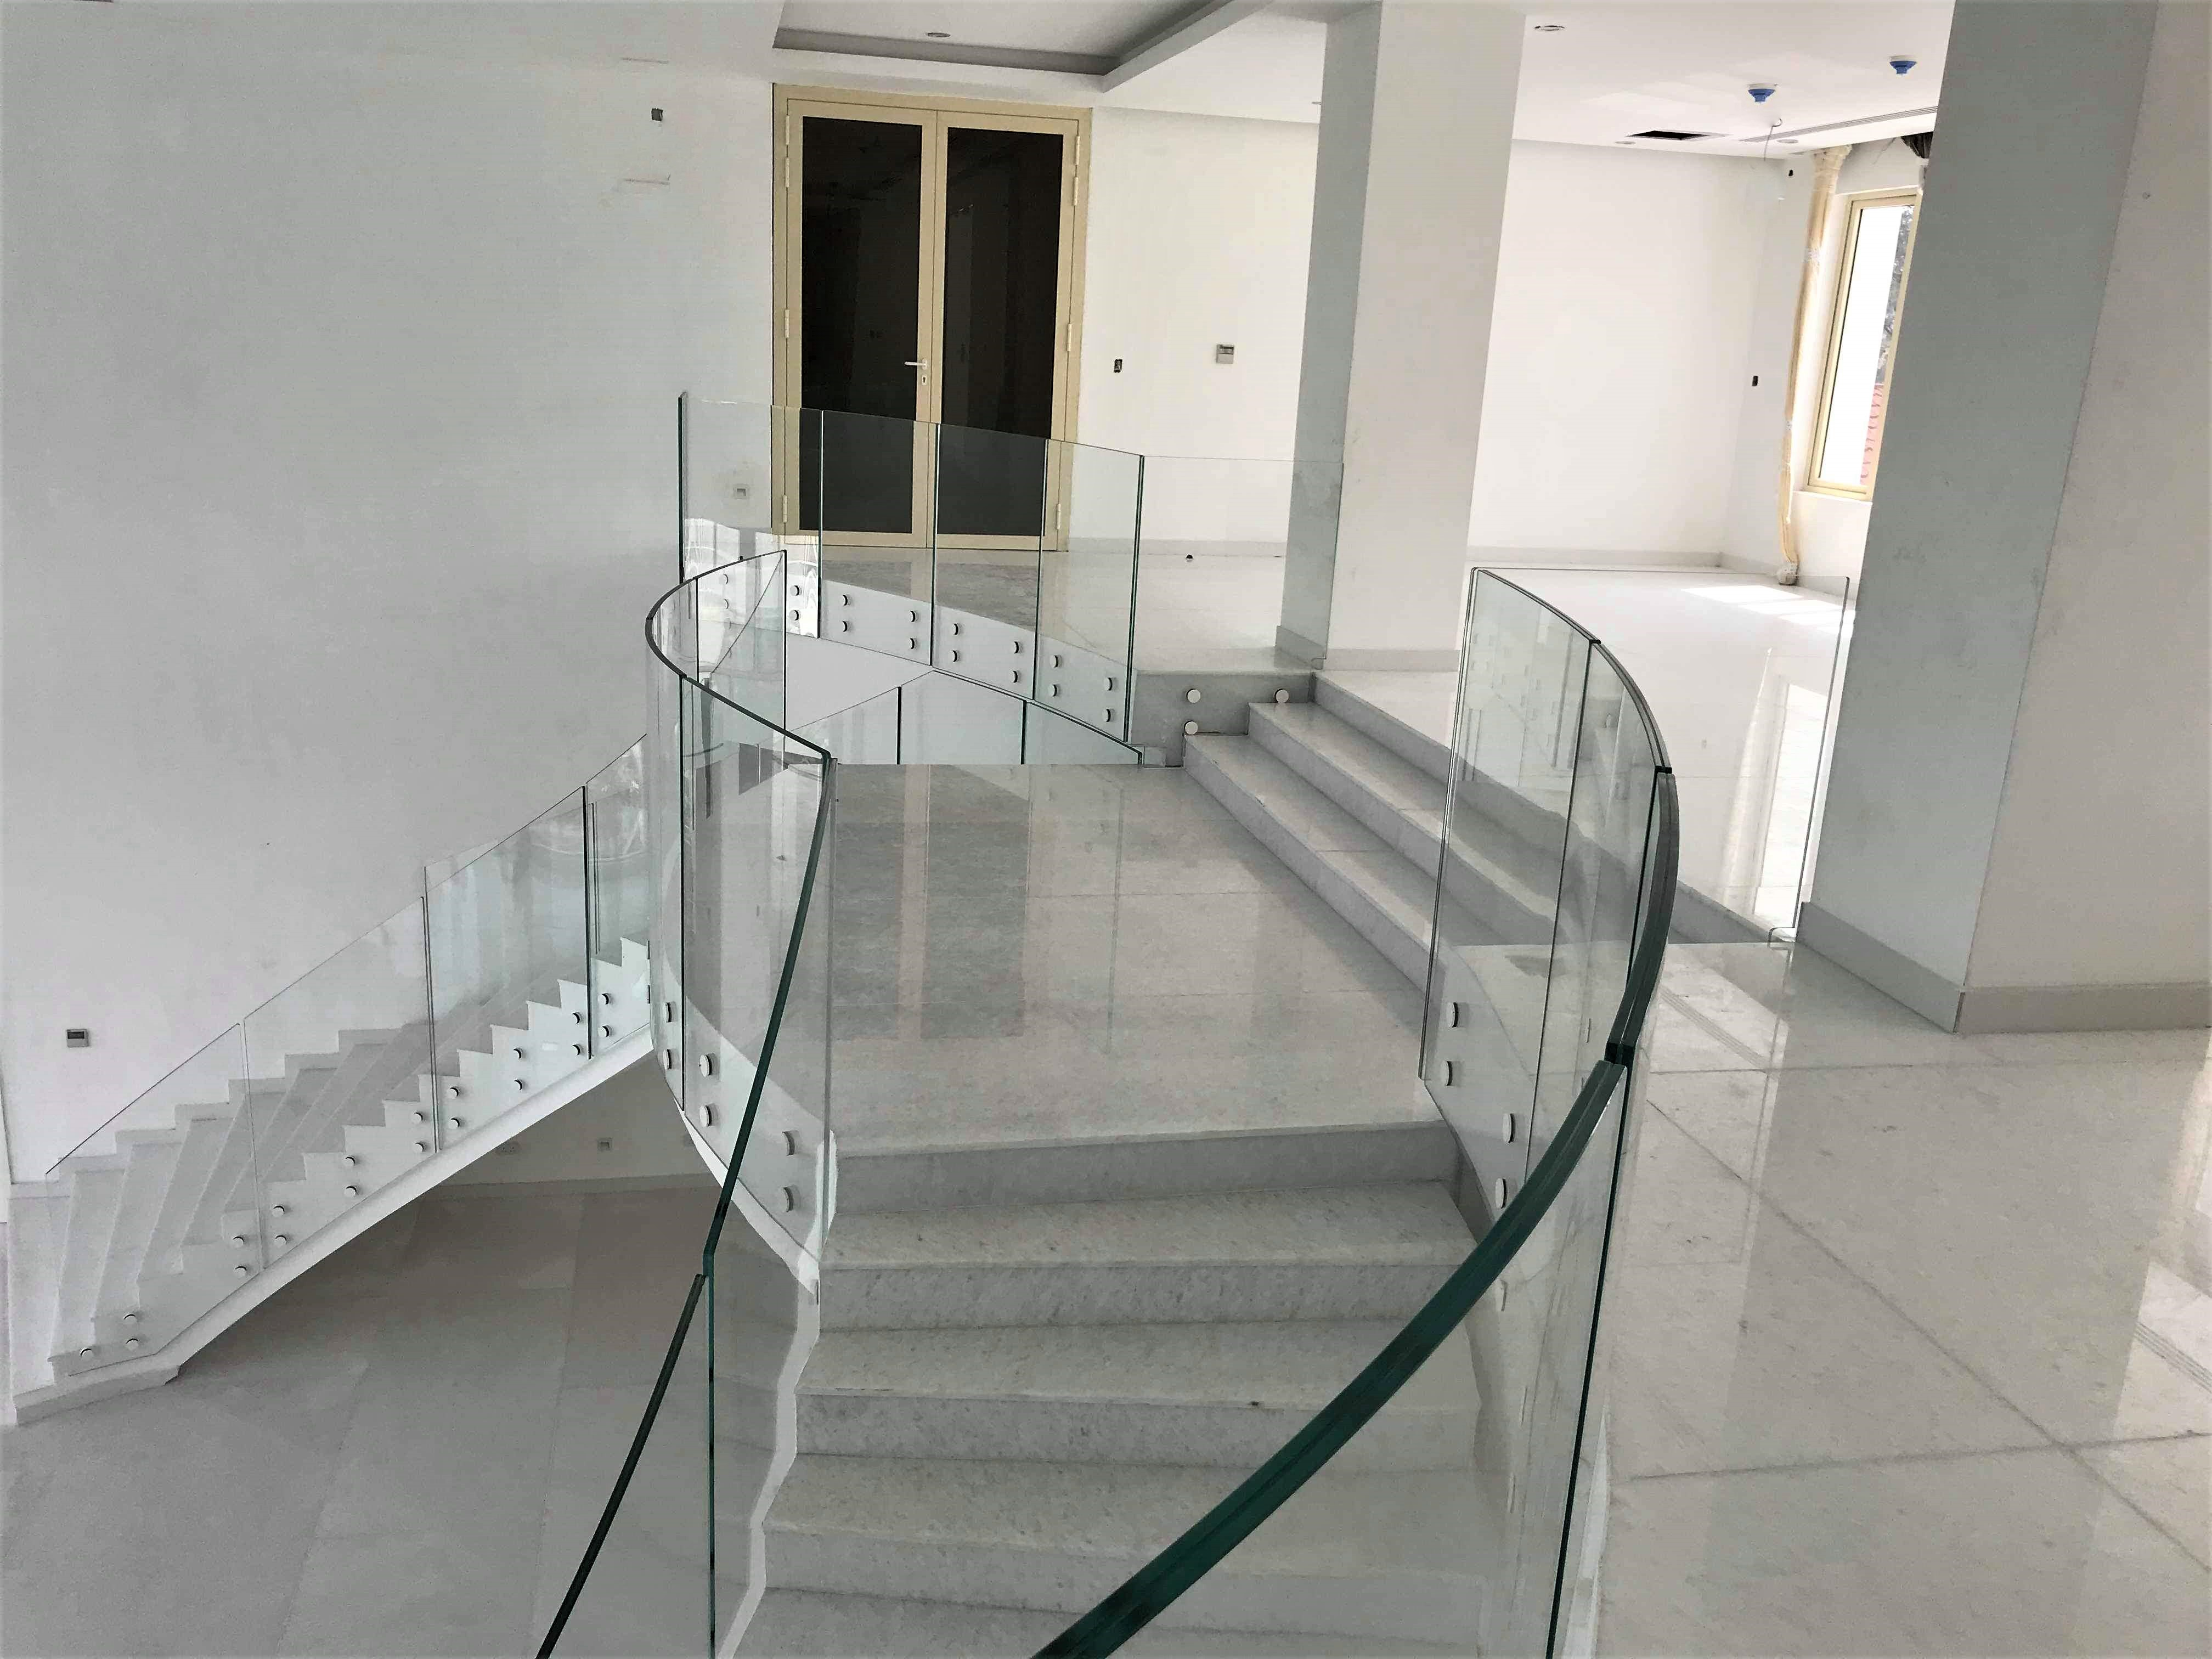 Curved glass mezzanine floor balustrade